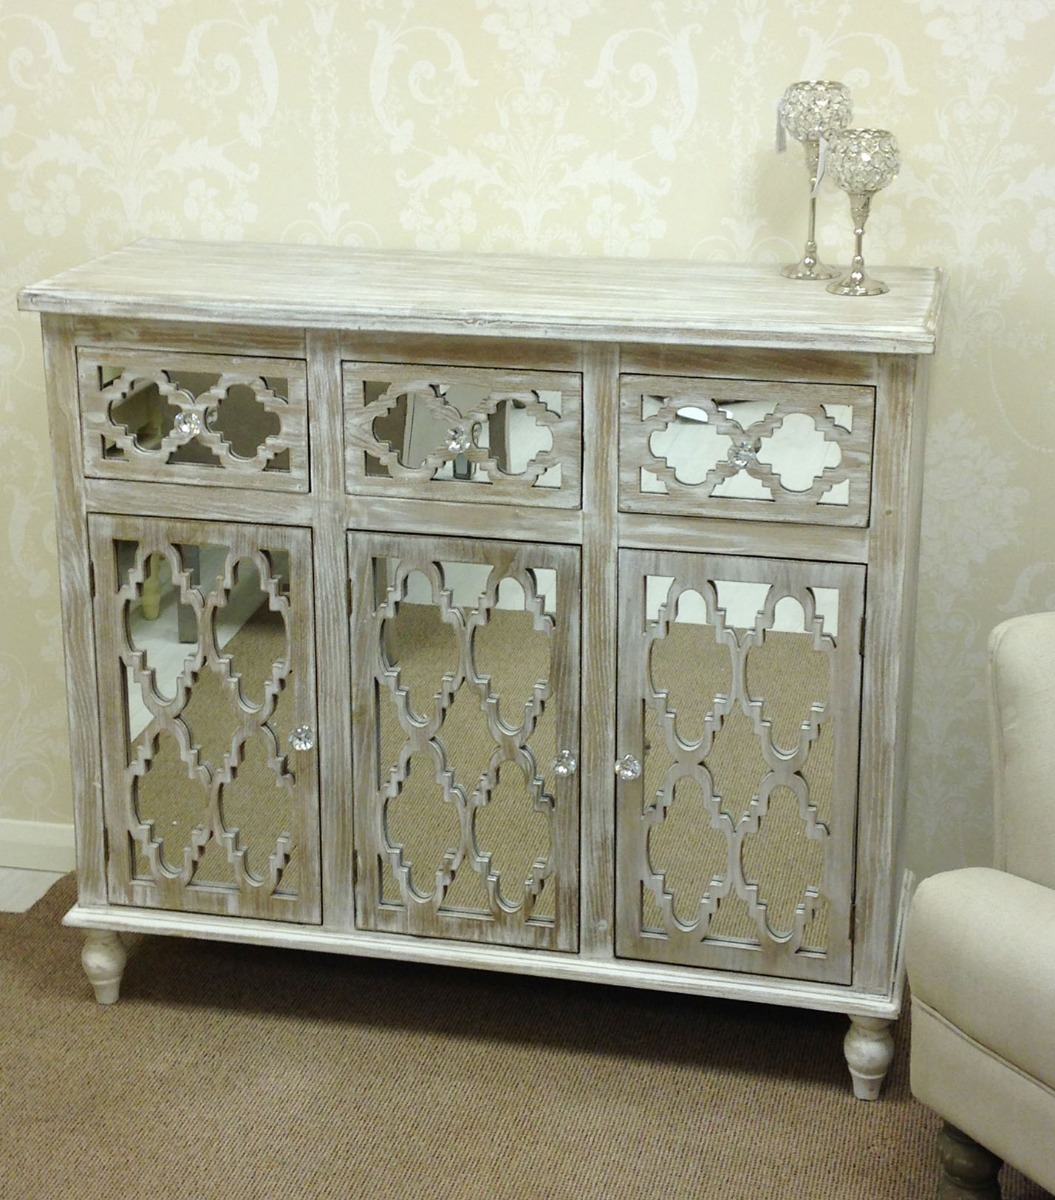 Captivating mirrored sideboard with knobs silver color and with decorative pattern design mirrored sideboard ideas